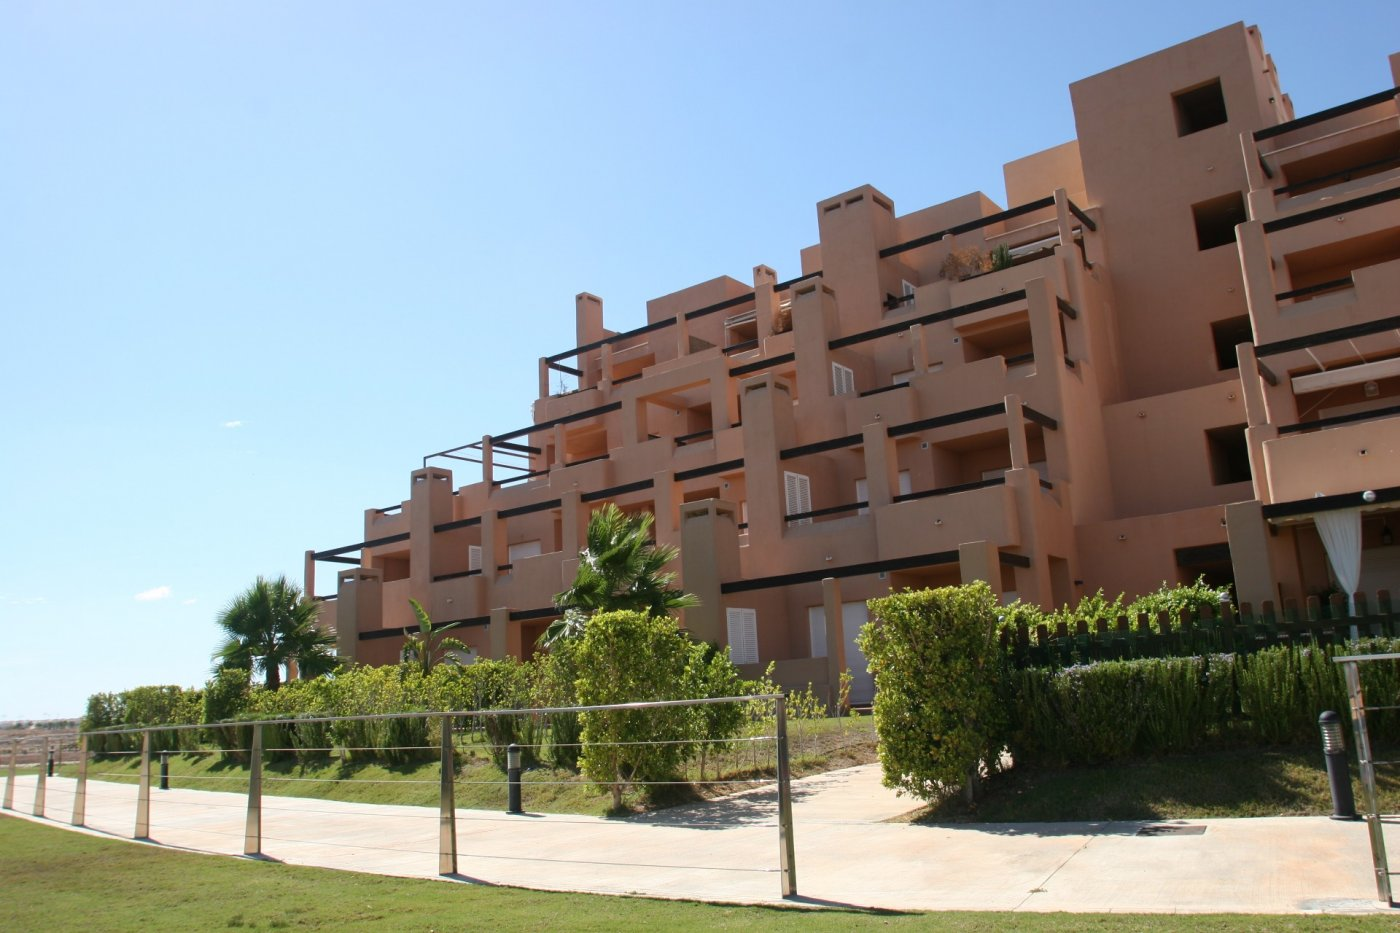 Gallery Image 34 of Bright and South-West facing 2 bedroom apartment in La Isla, with prime views and afternoon sun